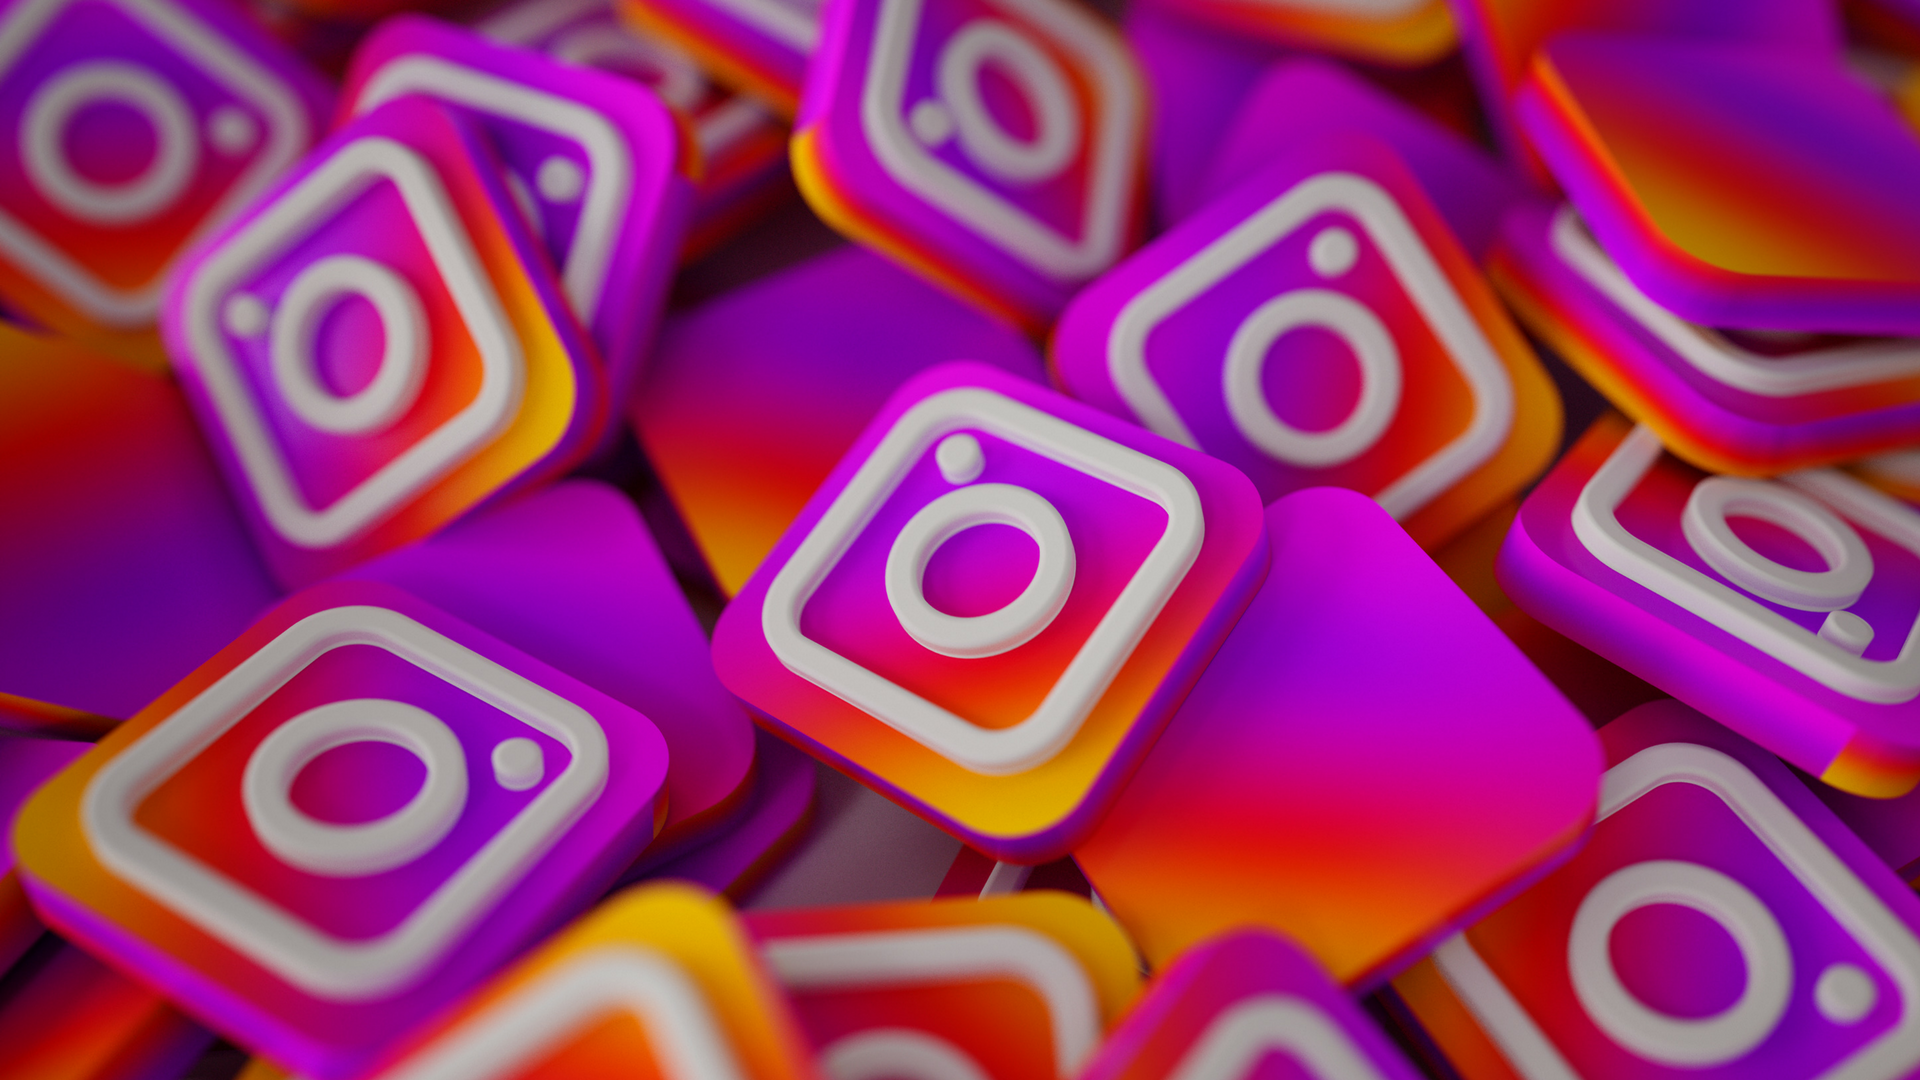 Top 20 Motivational Instagram Accounts To Follow In 2018